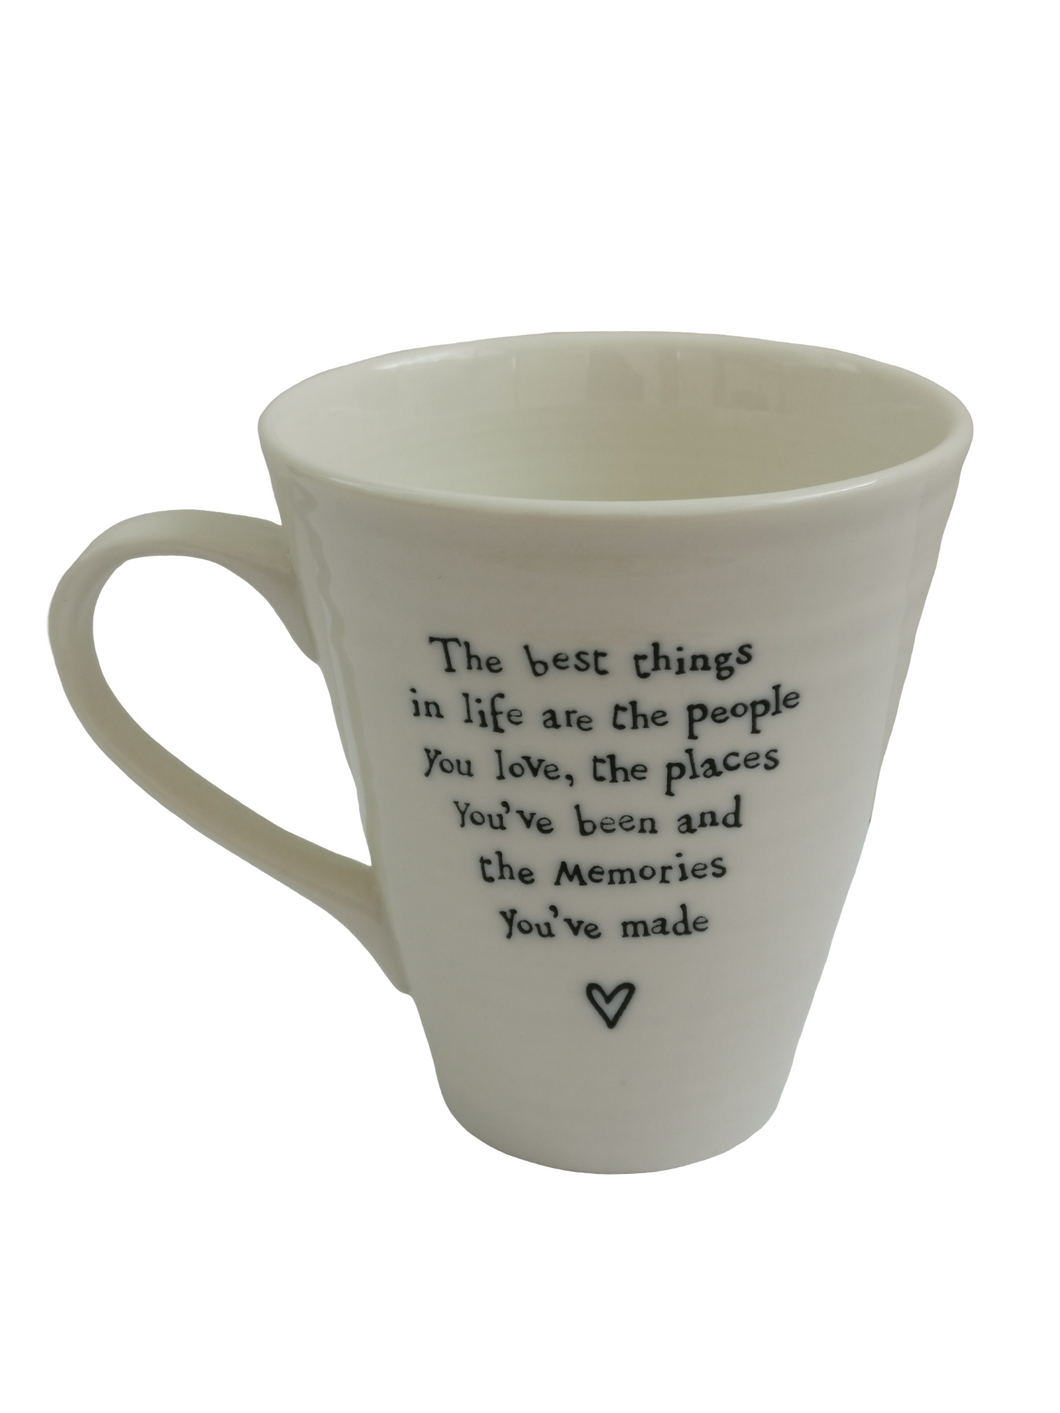 East Of India White Porcelain Mug - The Best Thing